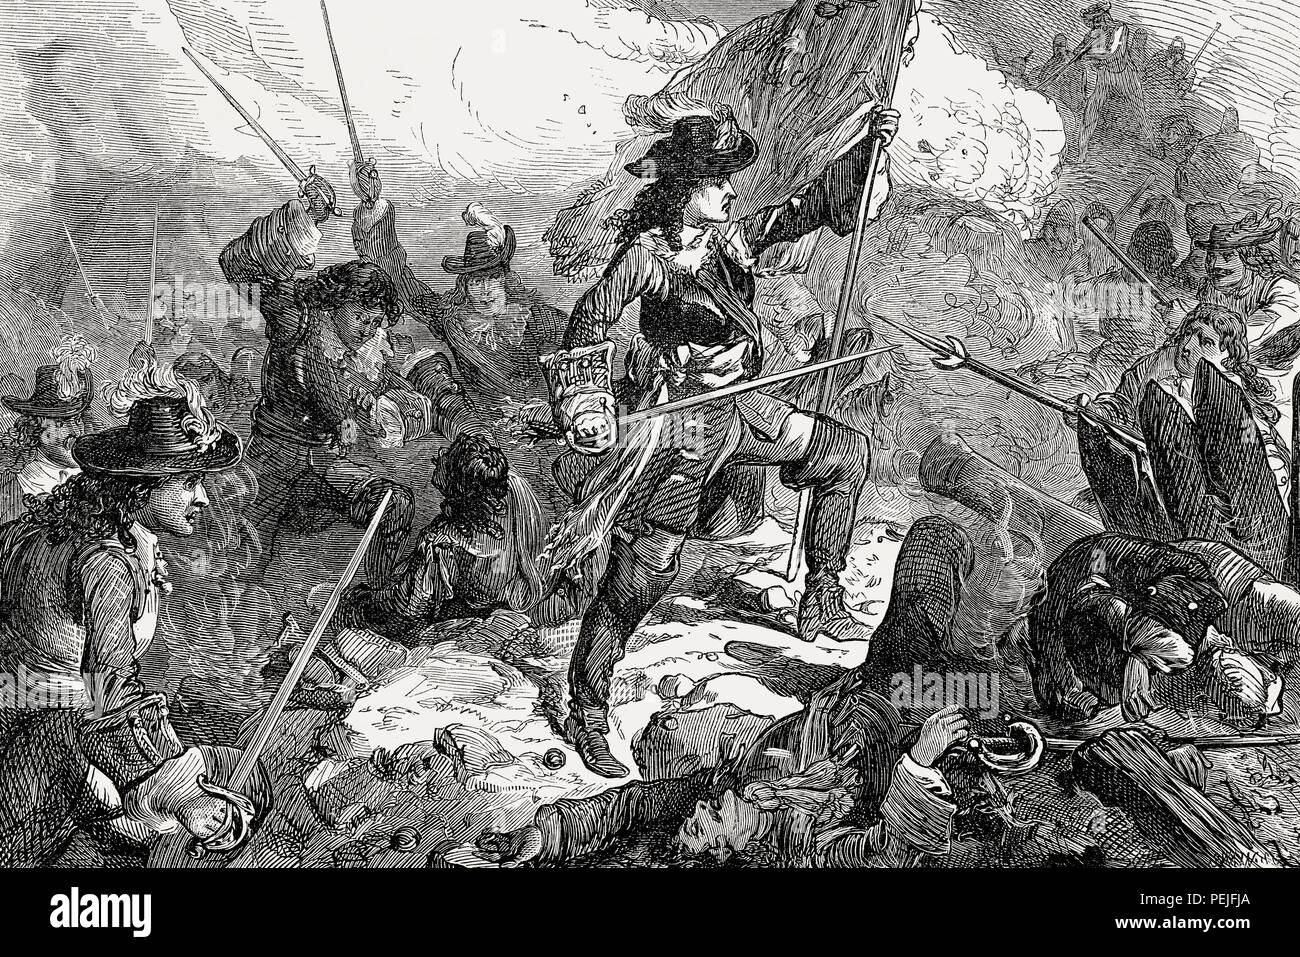 Captain John Churchill at the Siege of Maastricht, June 1673, From British Battles on Land and Sea, by James Grant - Stock Image